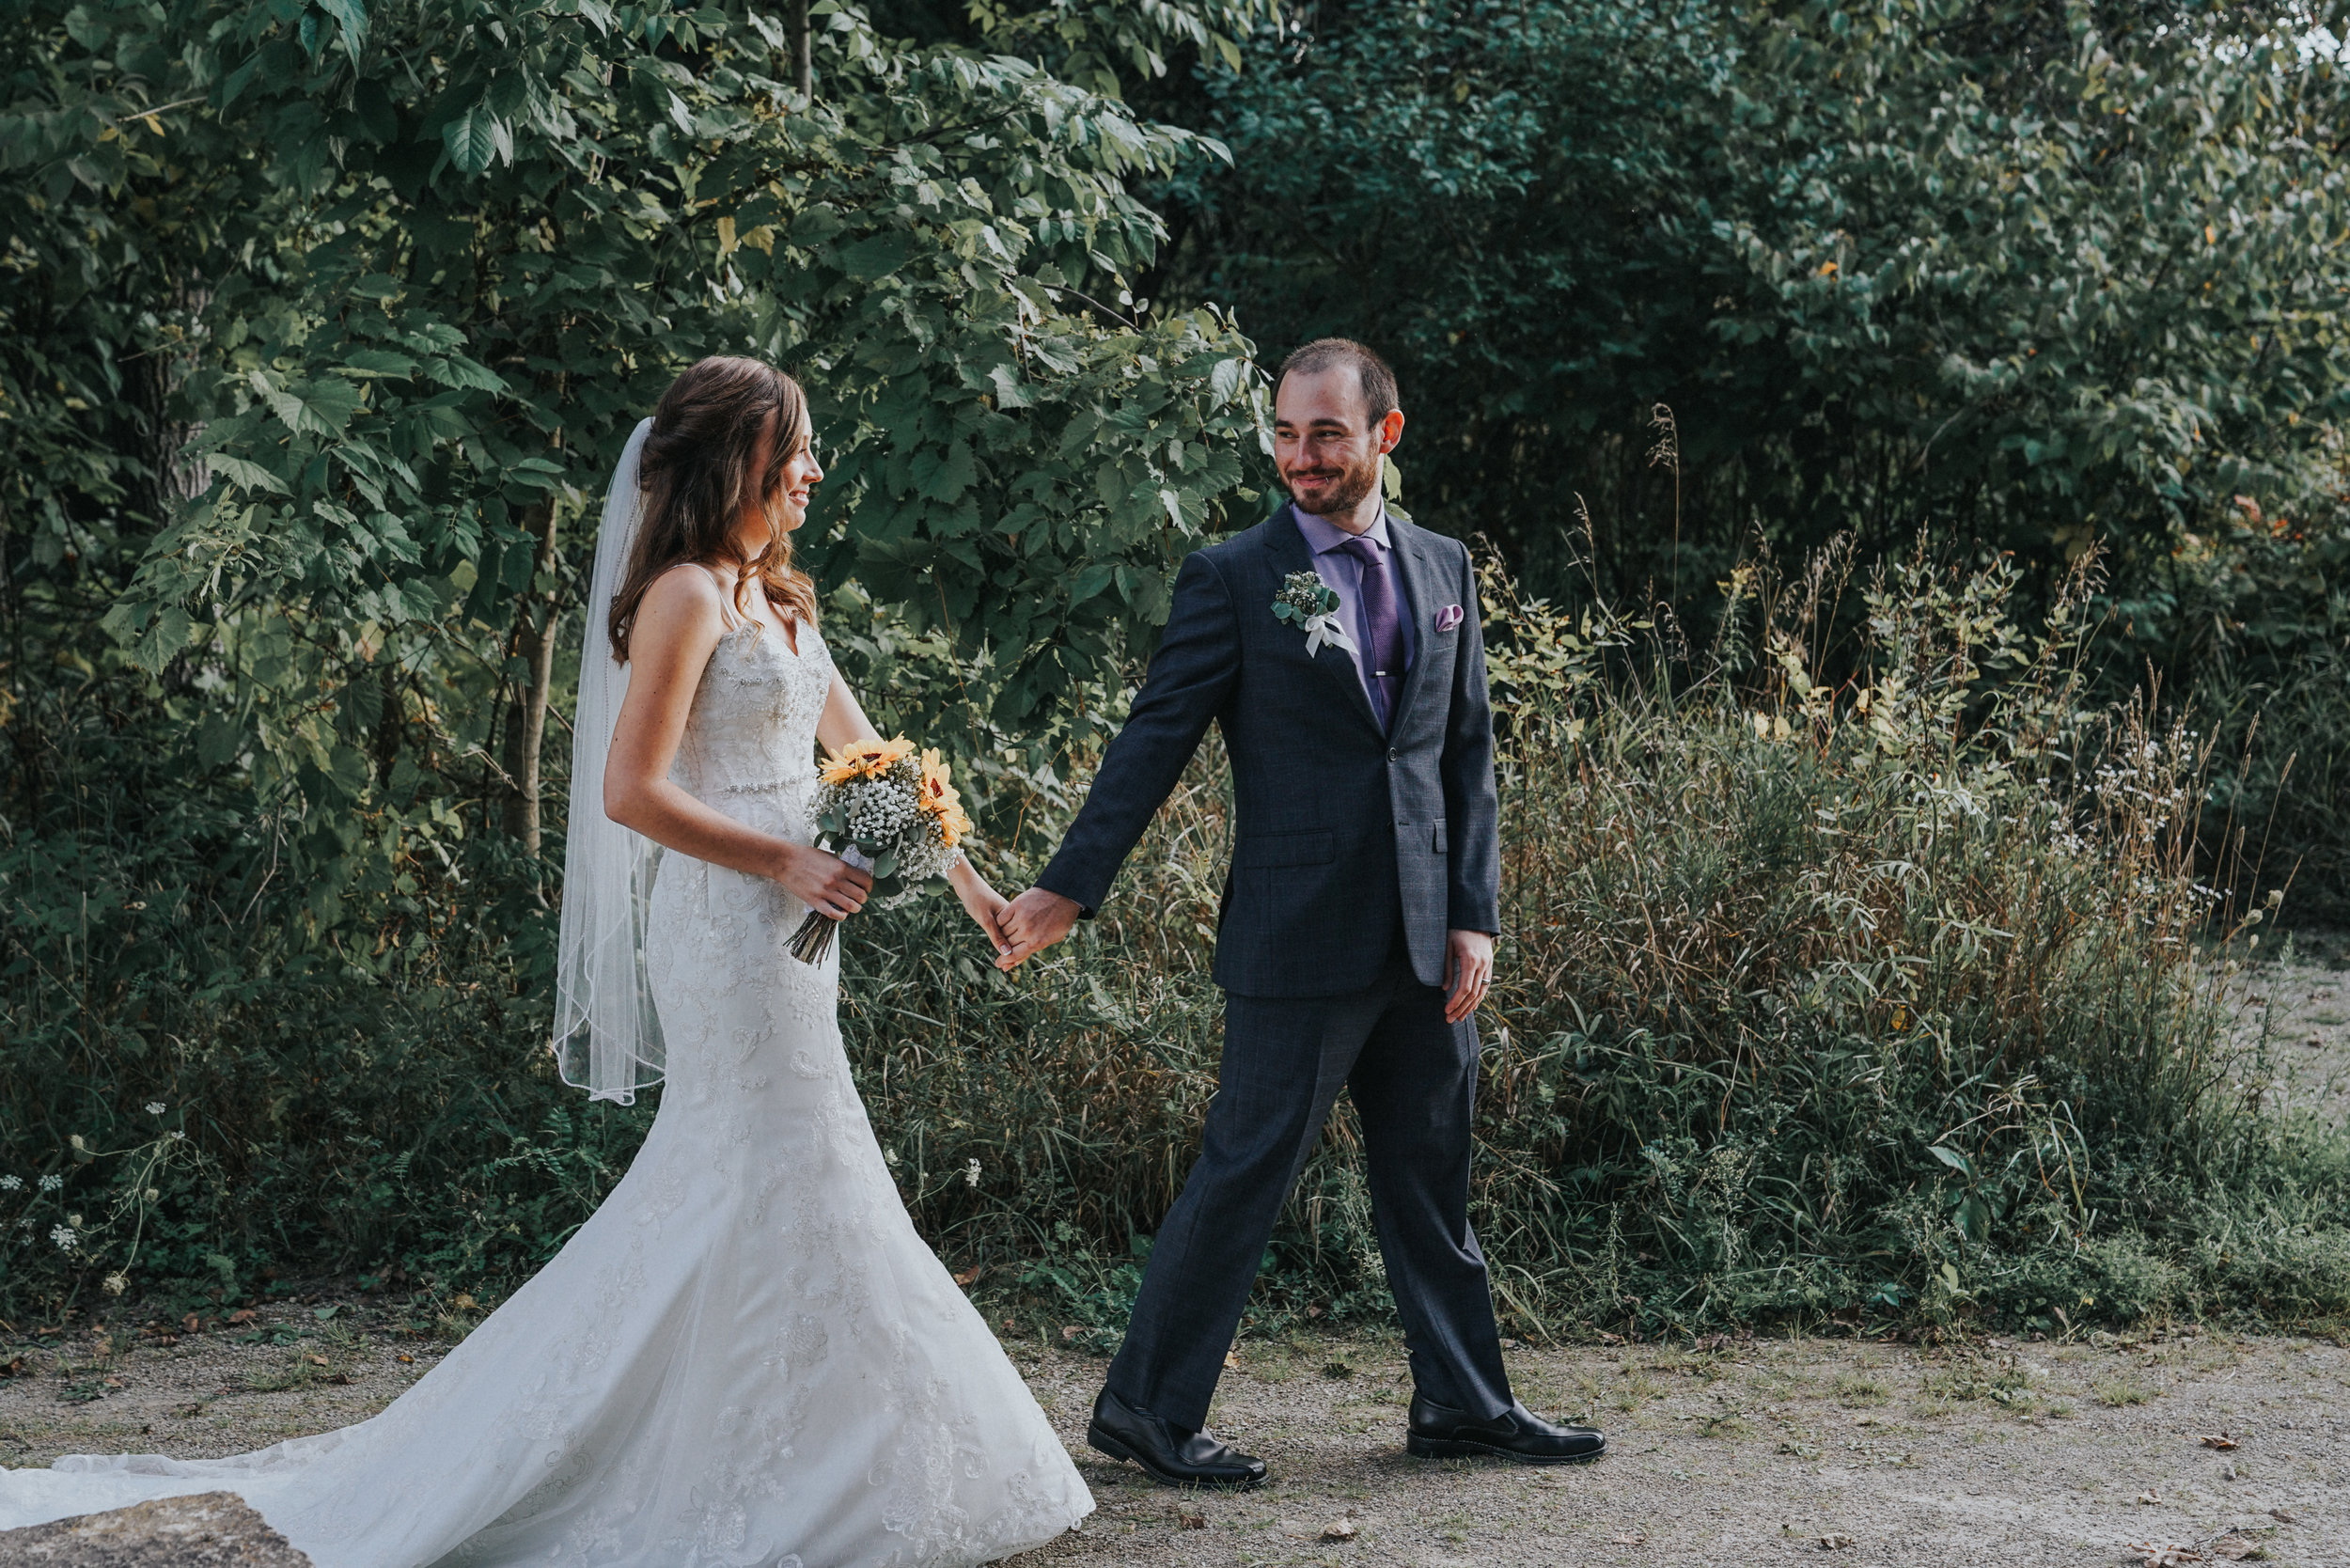 Fall wedding at Indian Springs Metropark